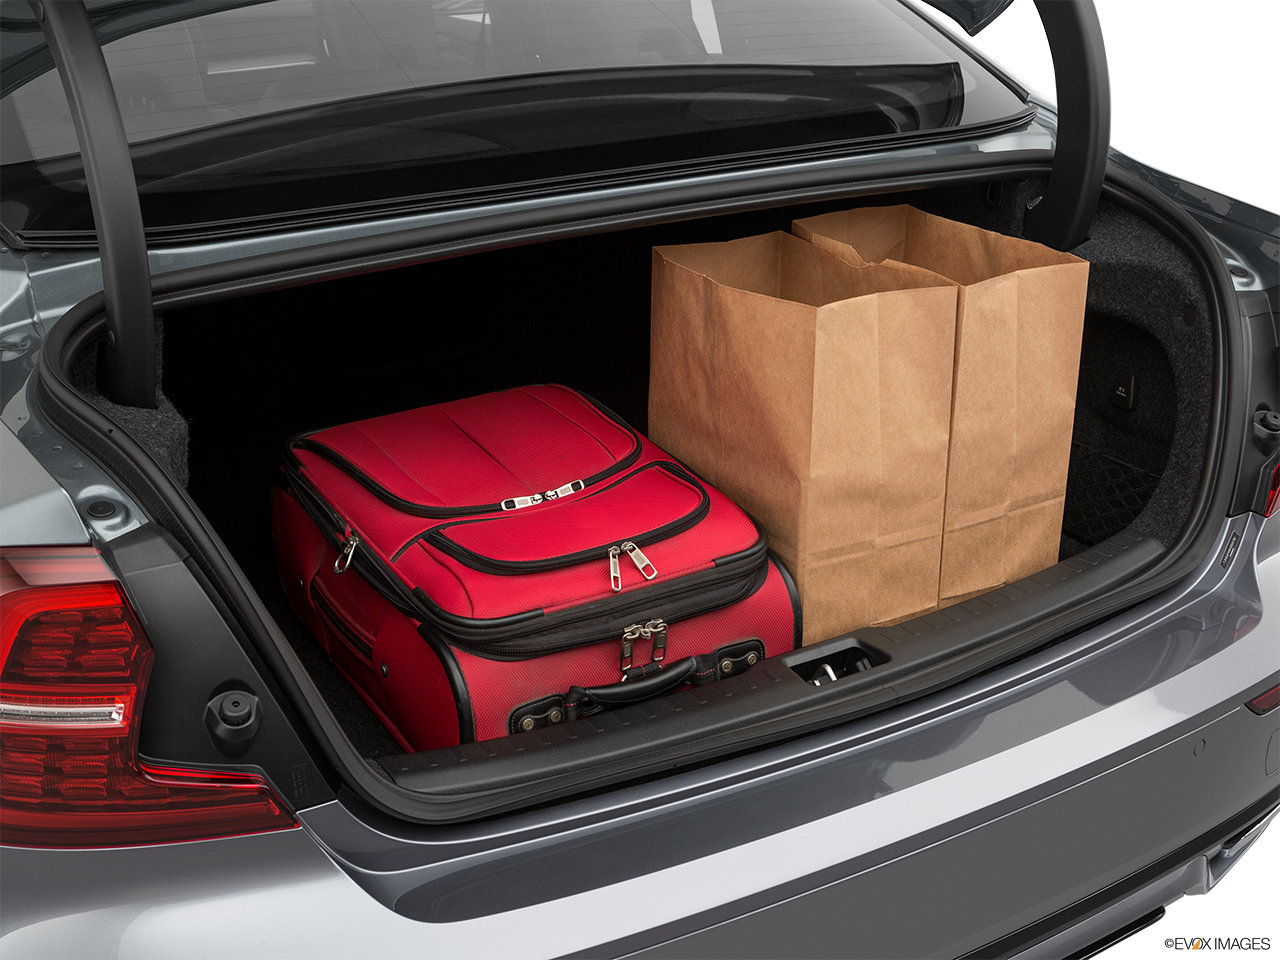 Trunk view of the Volvo S60 PHEV